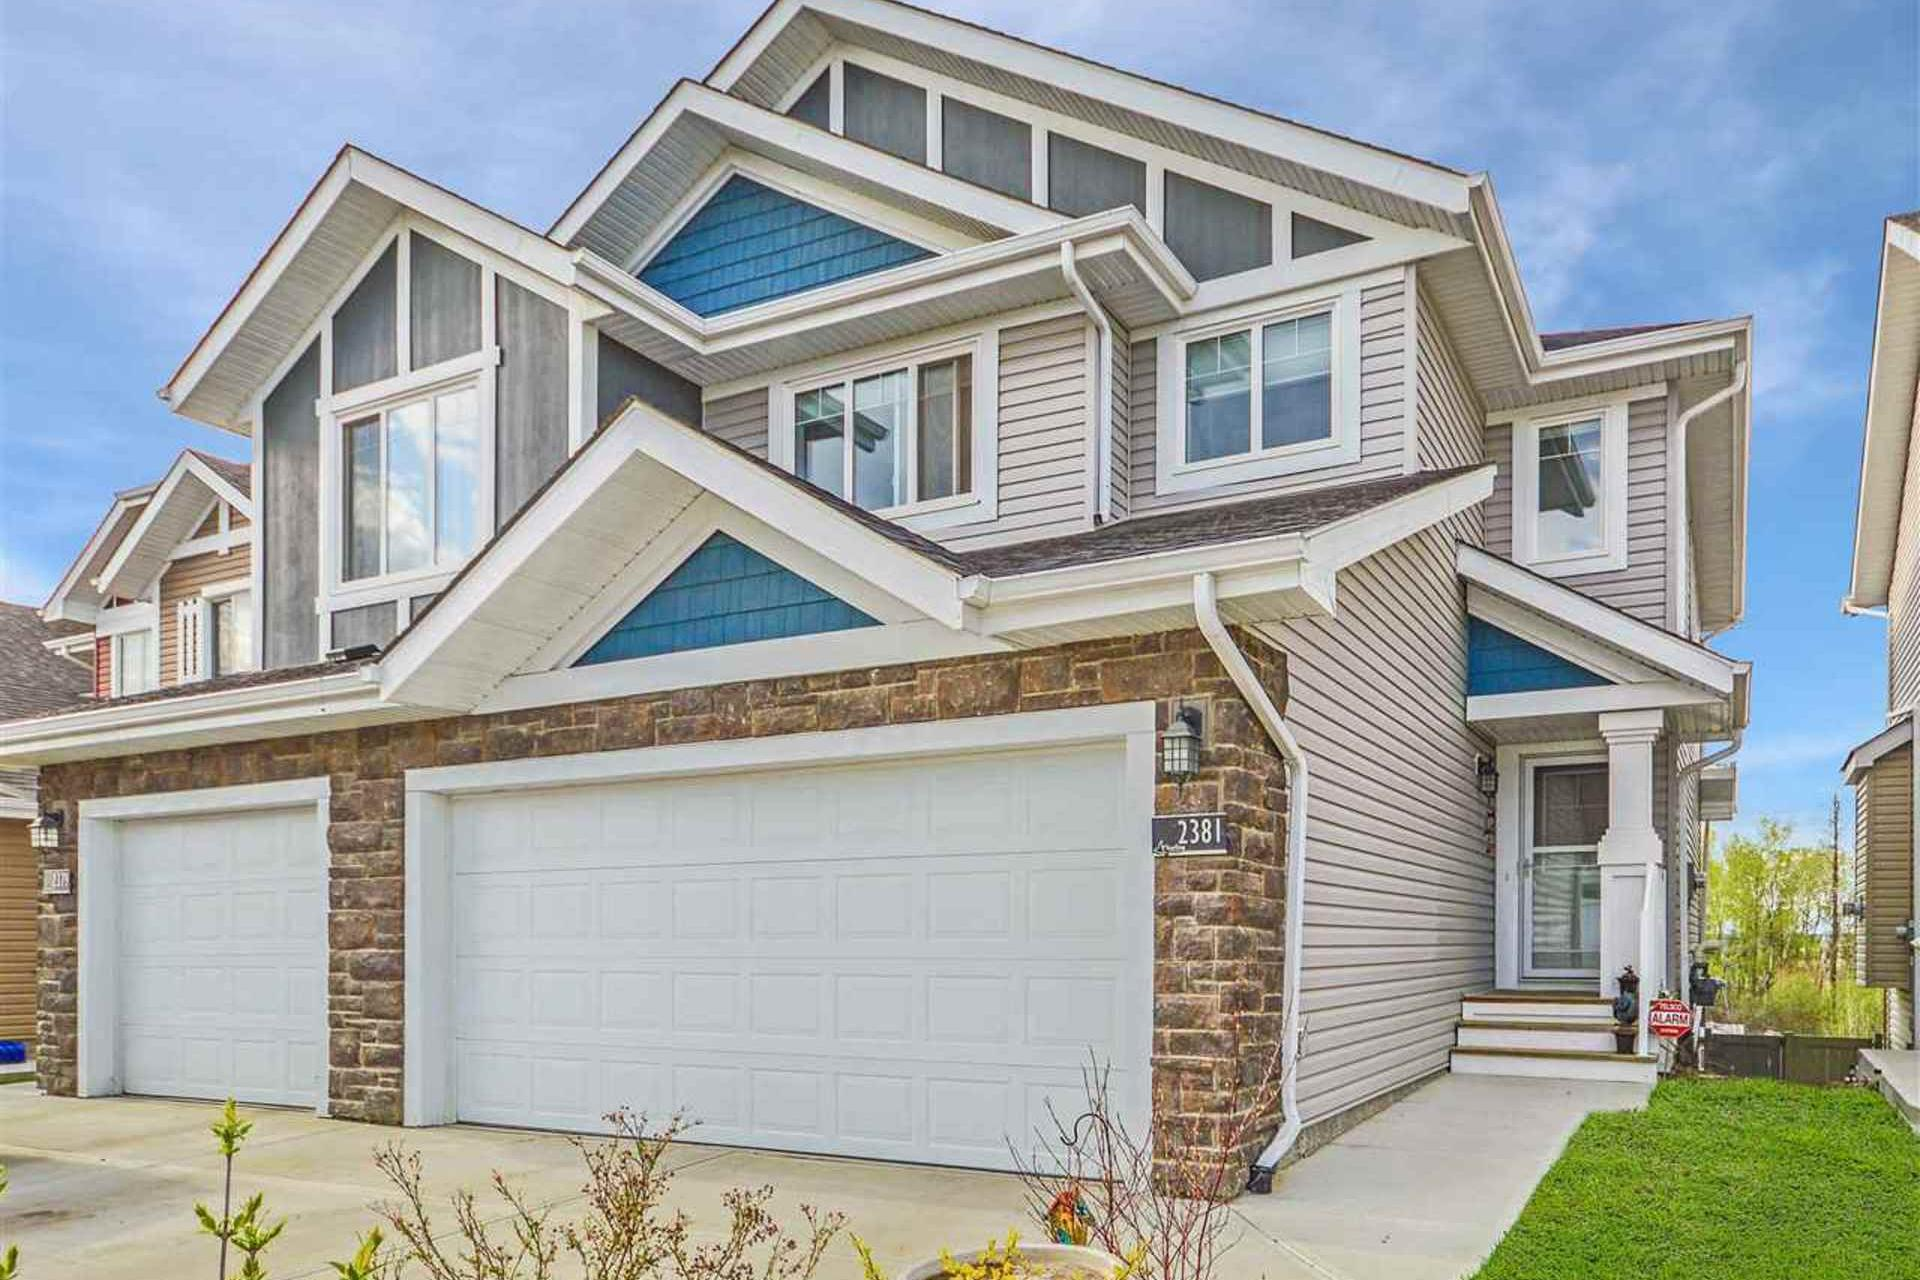 2381 Sparrow Crescent, Starling, Edmonton